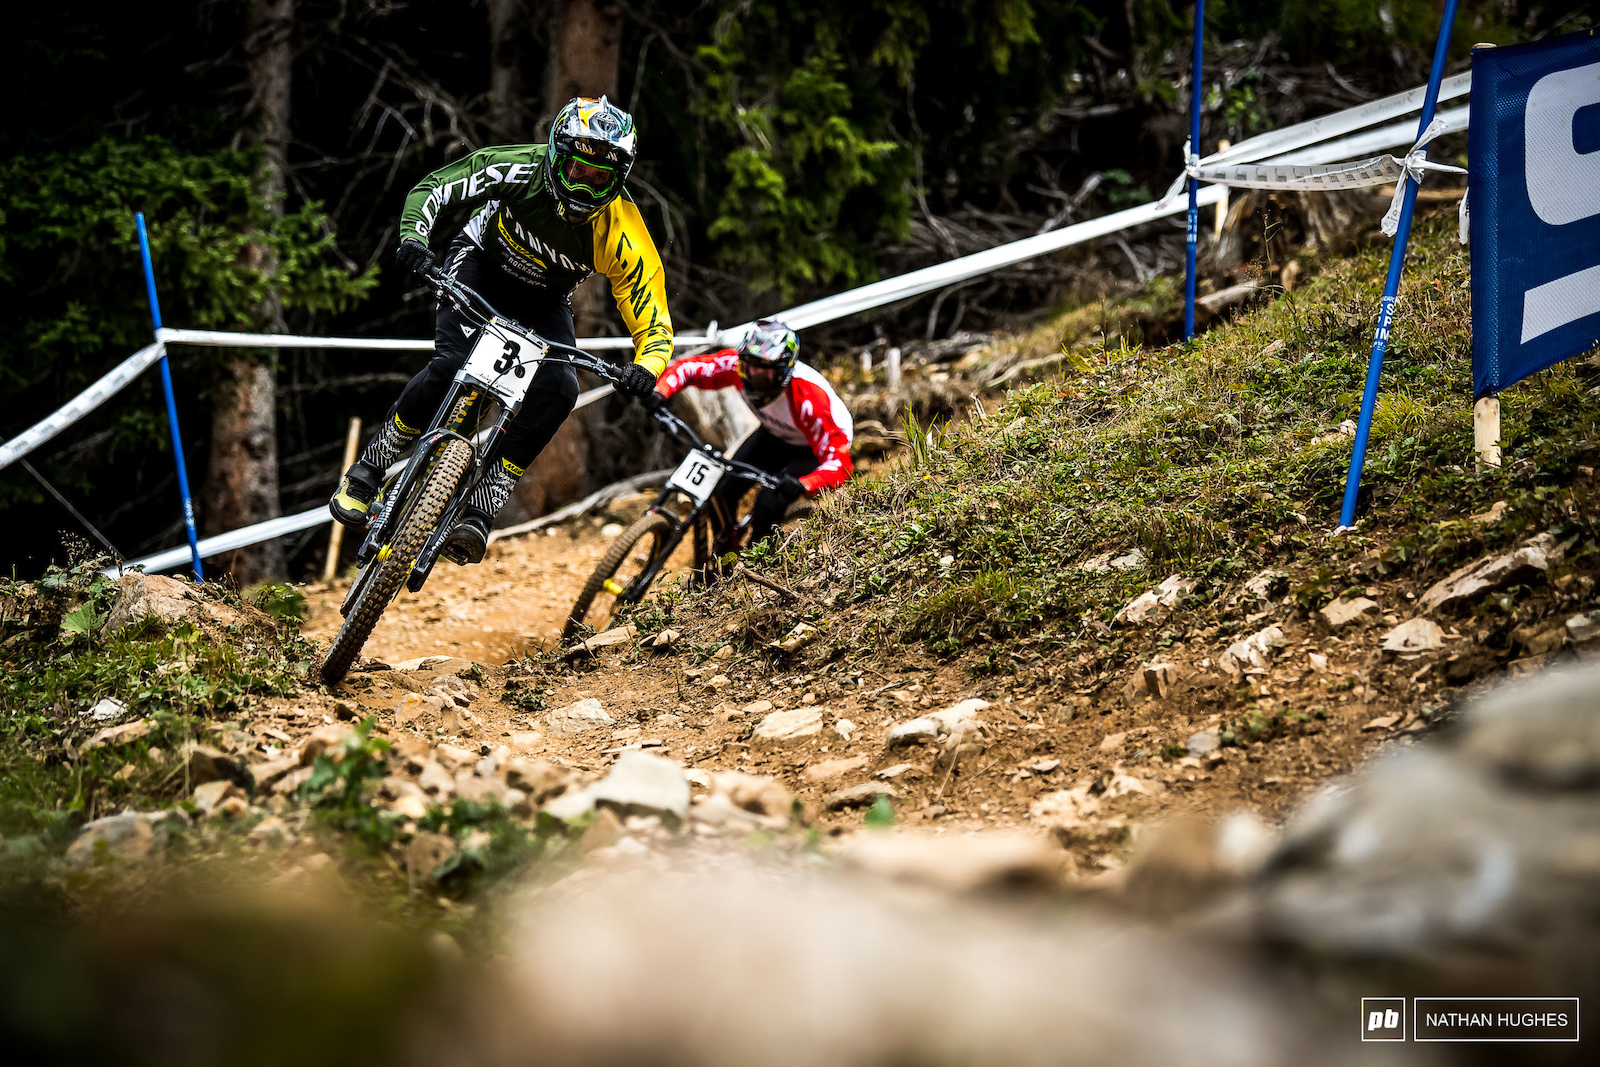 Team mates Brosnan and Wallace were firing out hot laps on the Swiss dirt.